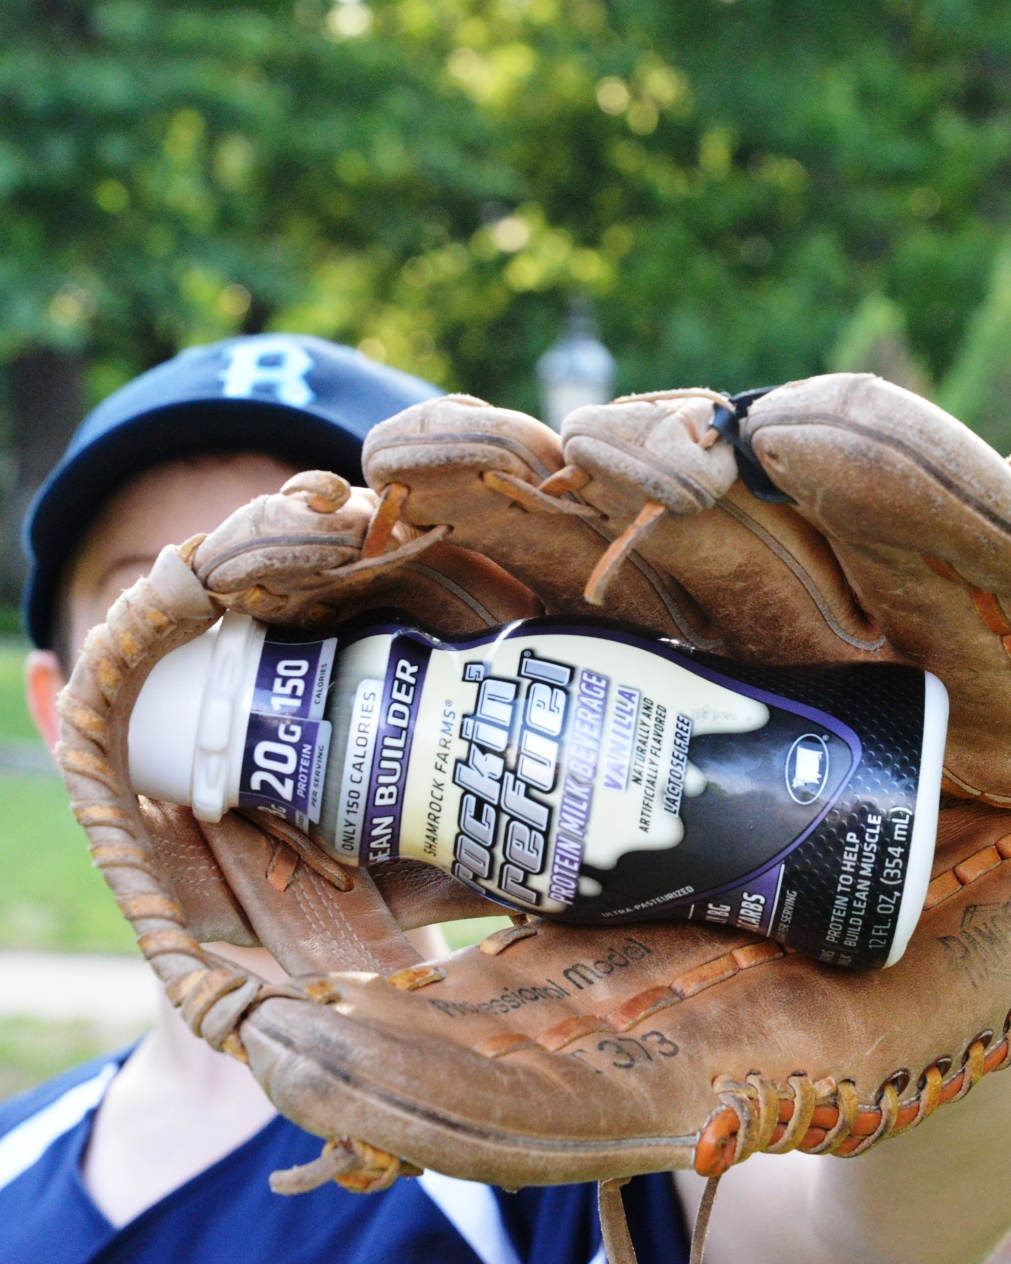 A baseball player drinks high protein drink a protein drink called Rockin Refue